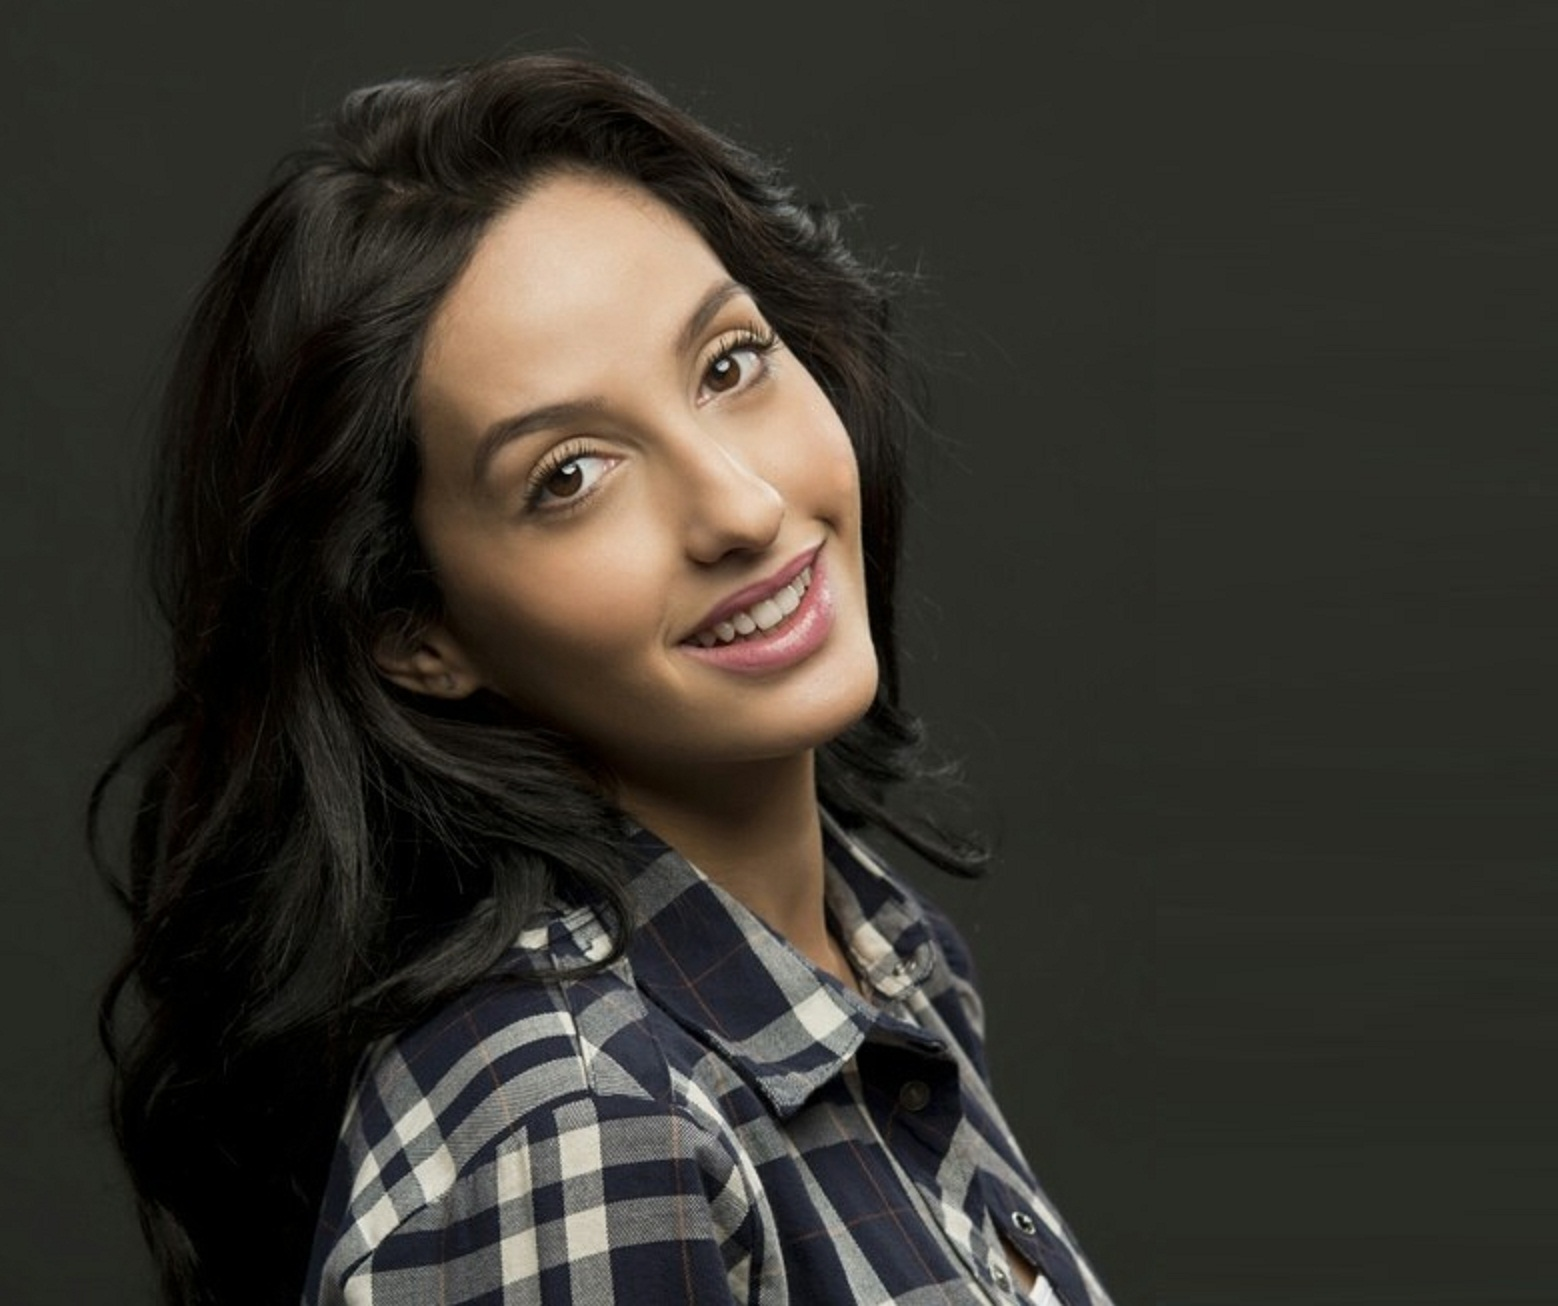 Nora: Nora Fatehi Wallpapers Free Download